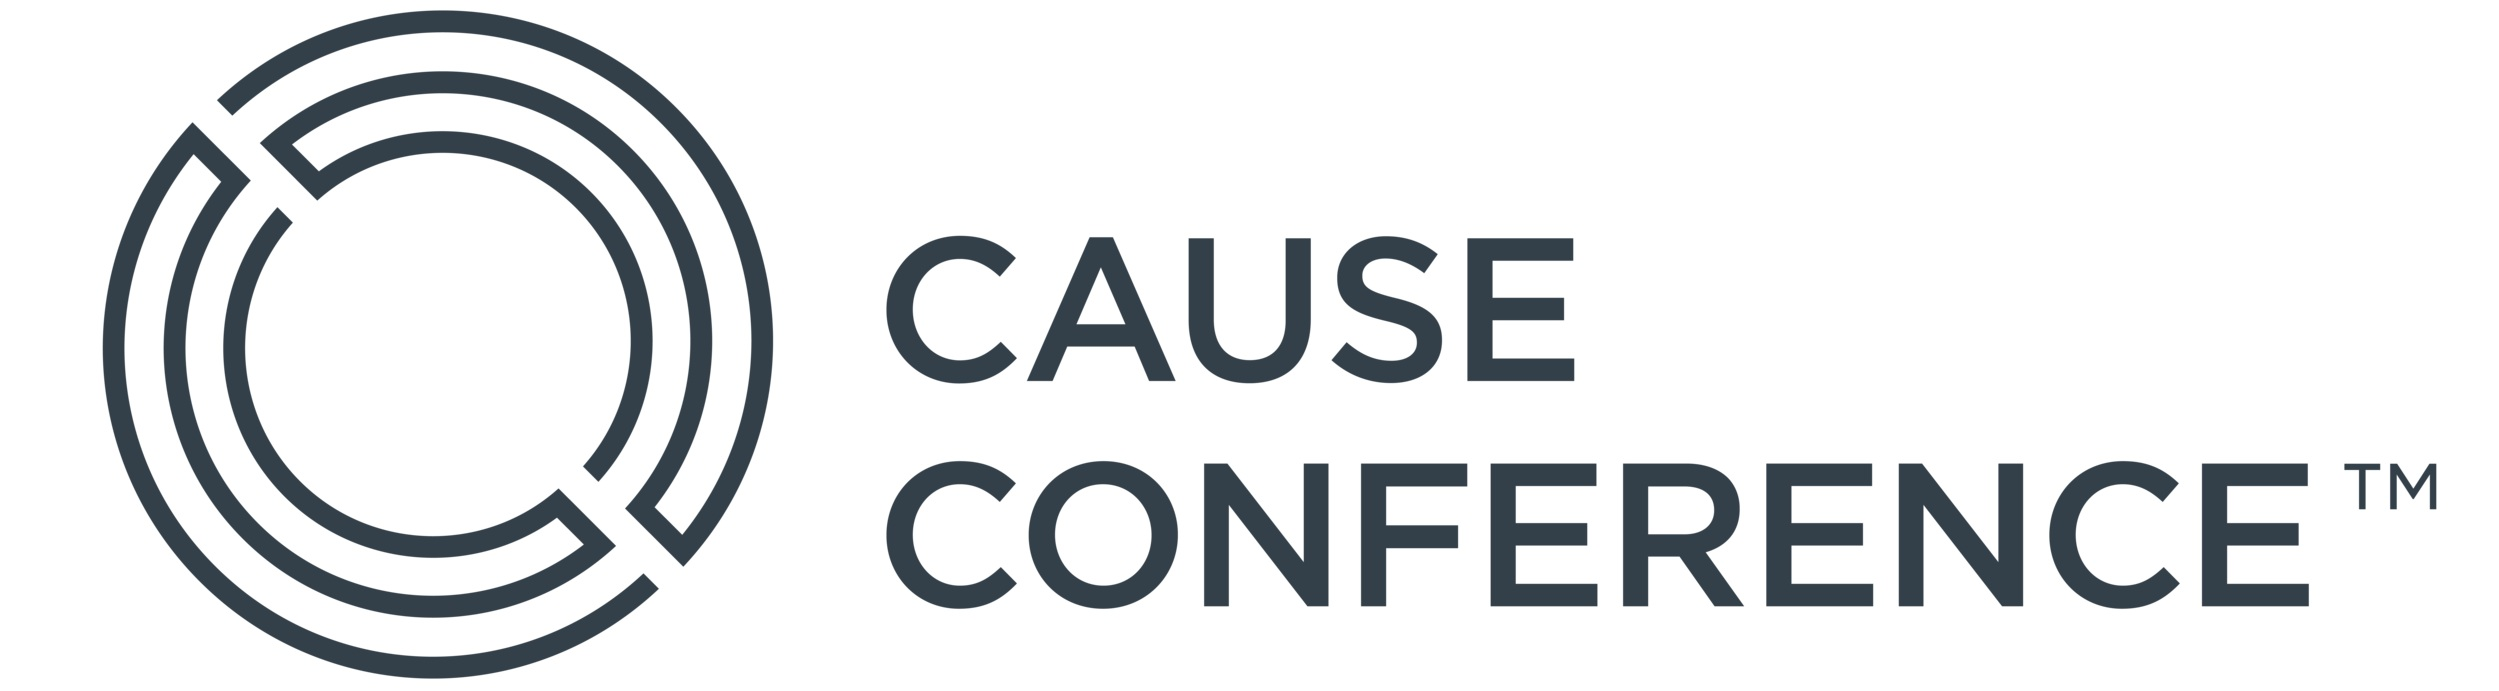 Cause-Conference-AMA-San-Diego-Logo-High-Res-PNG.png